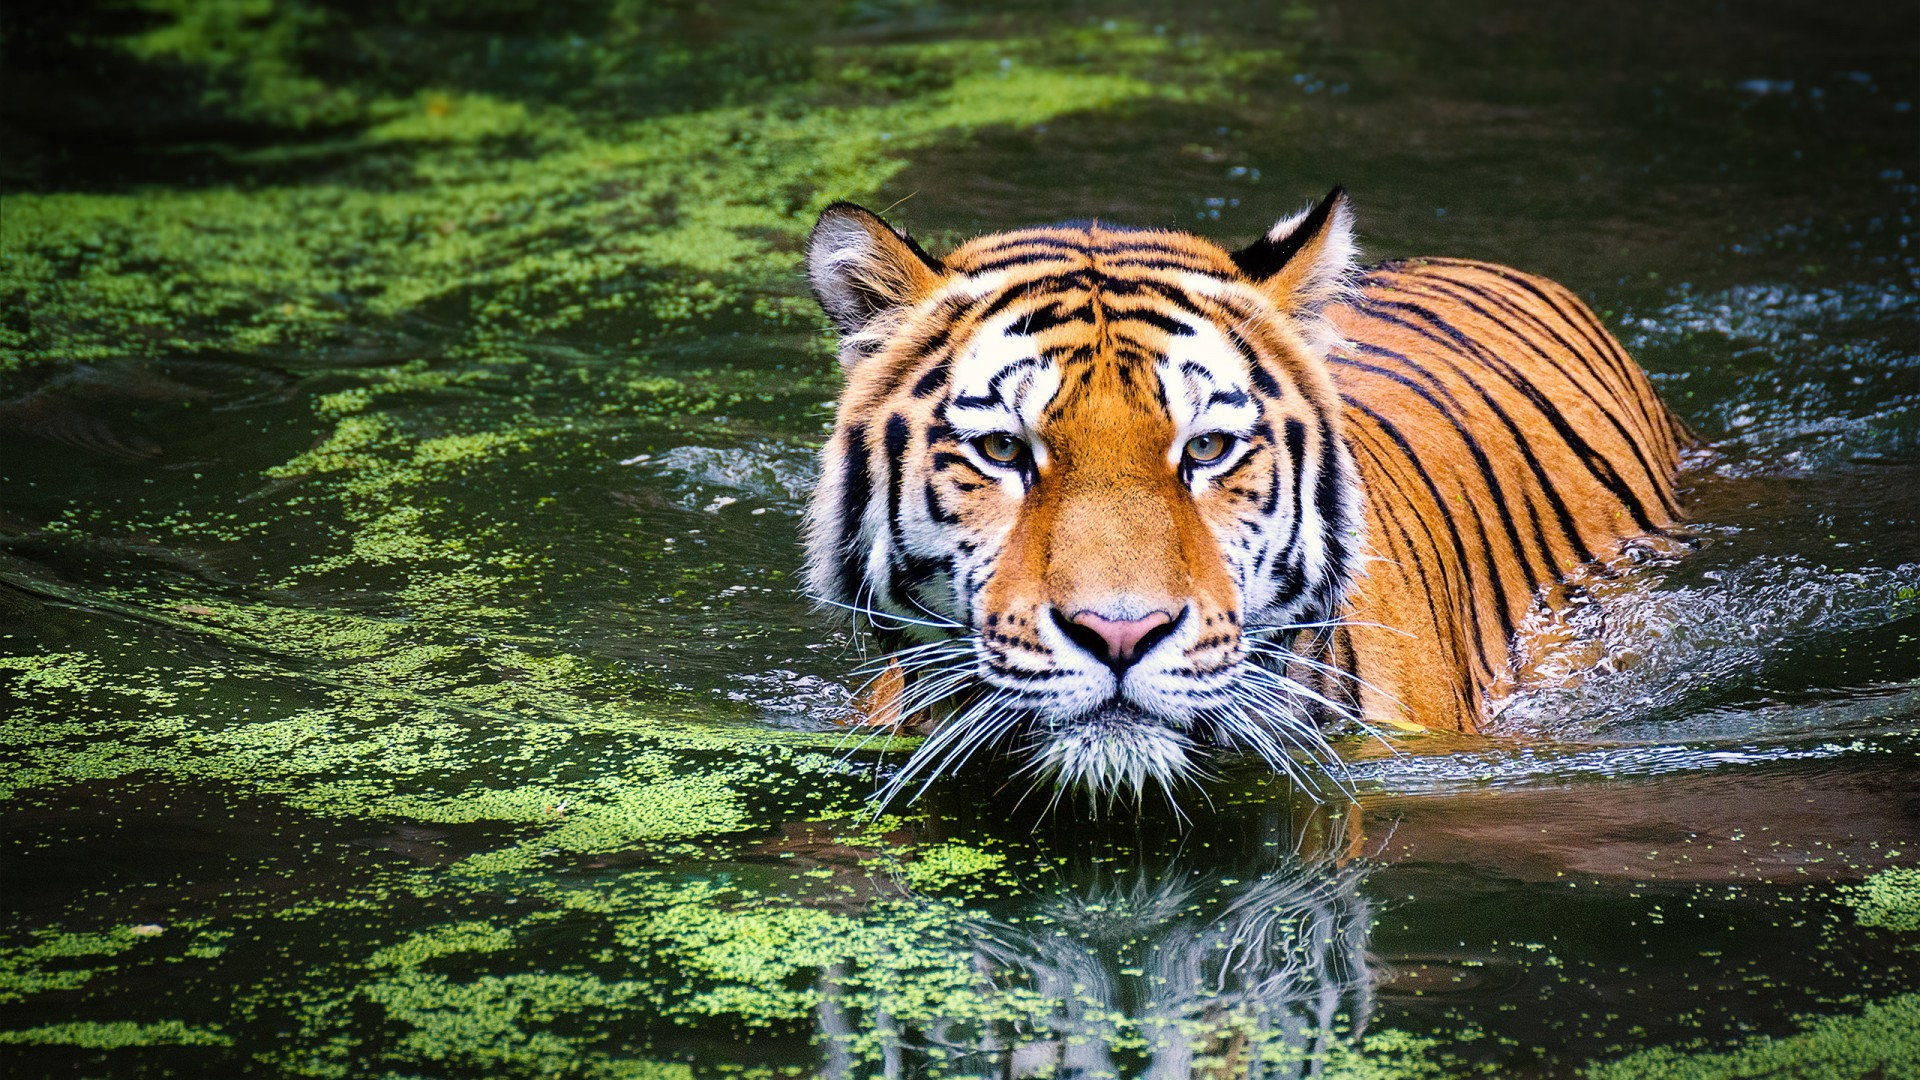 Cute Cats Wallpapers For Iphone Tiger In Zoo Wallpapers Hd Wallpapers Id 21060